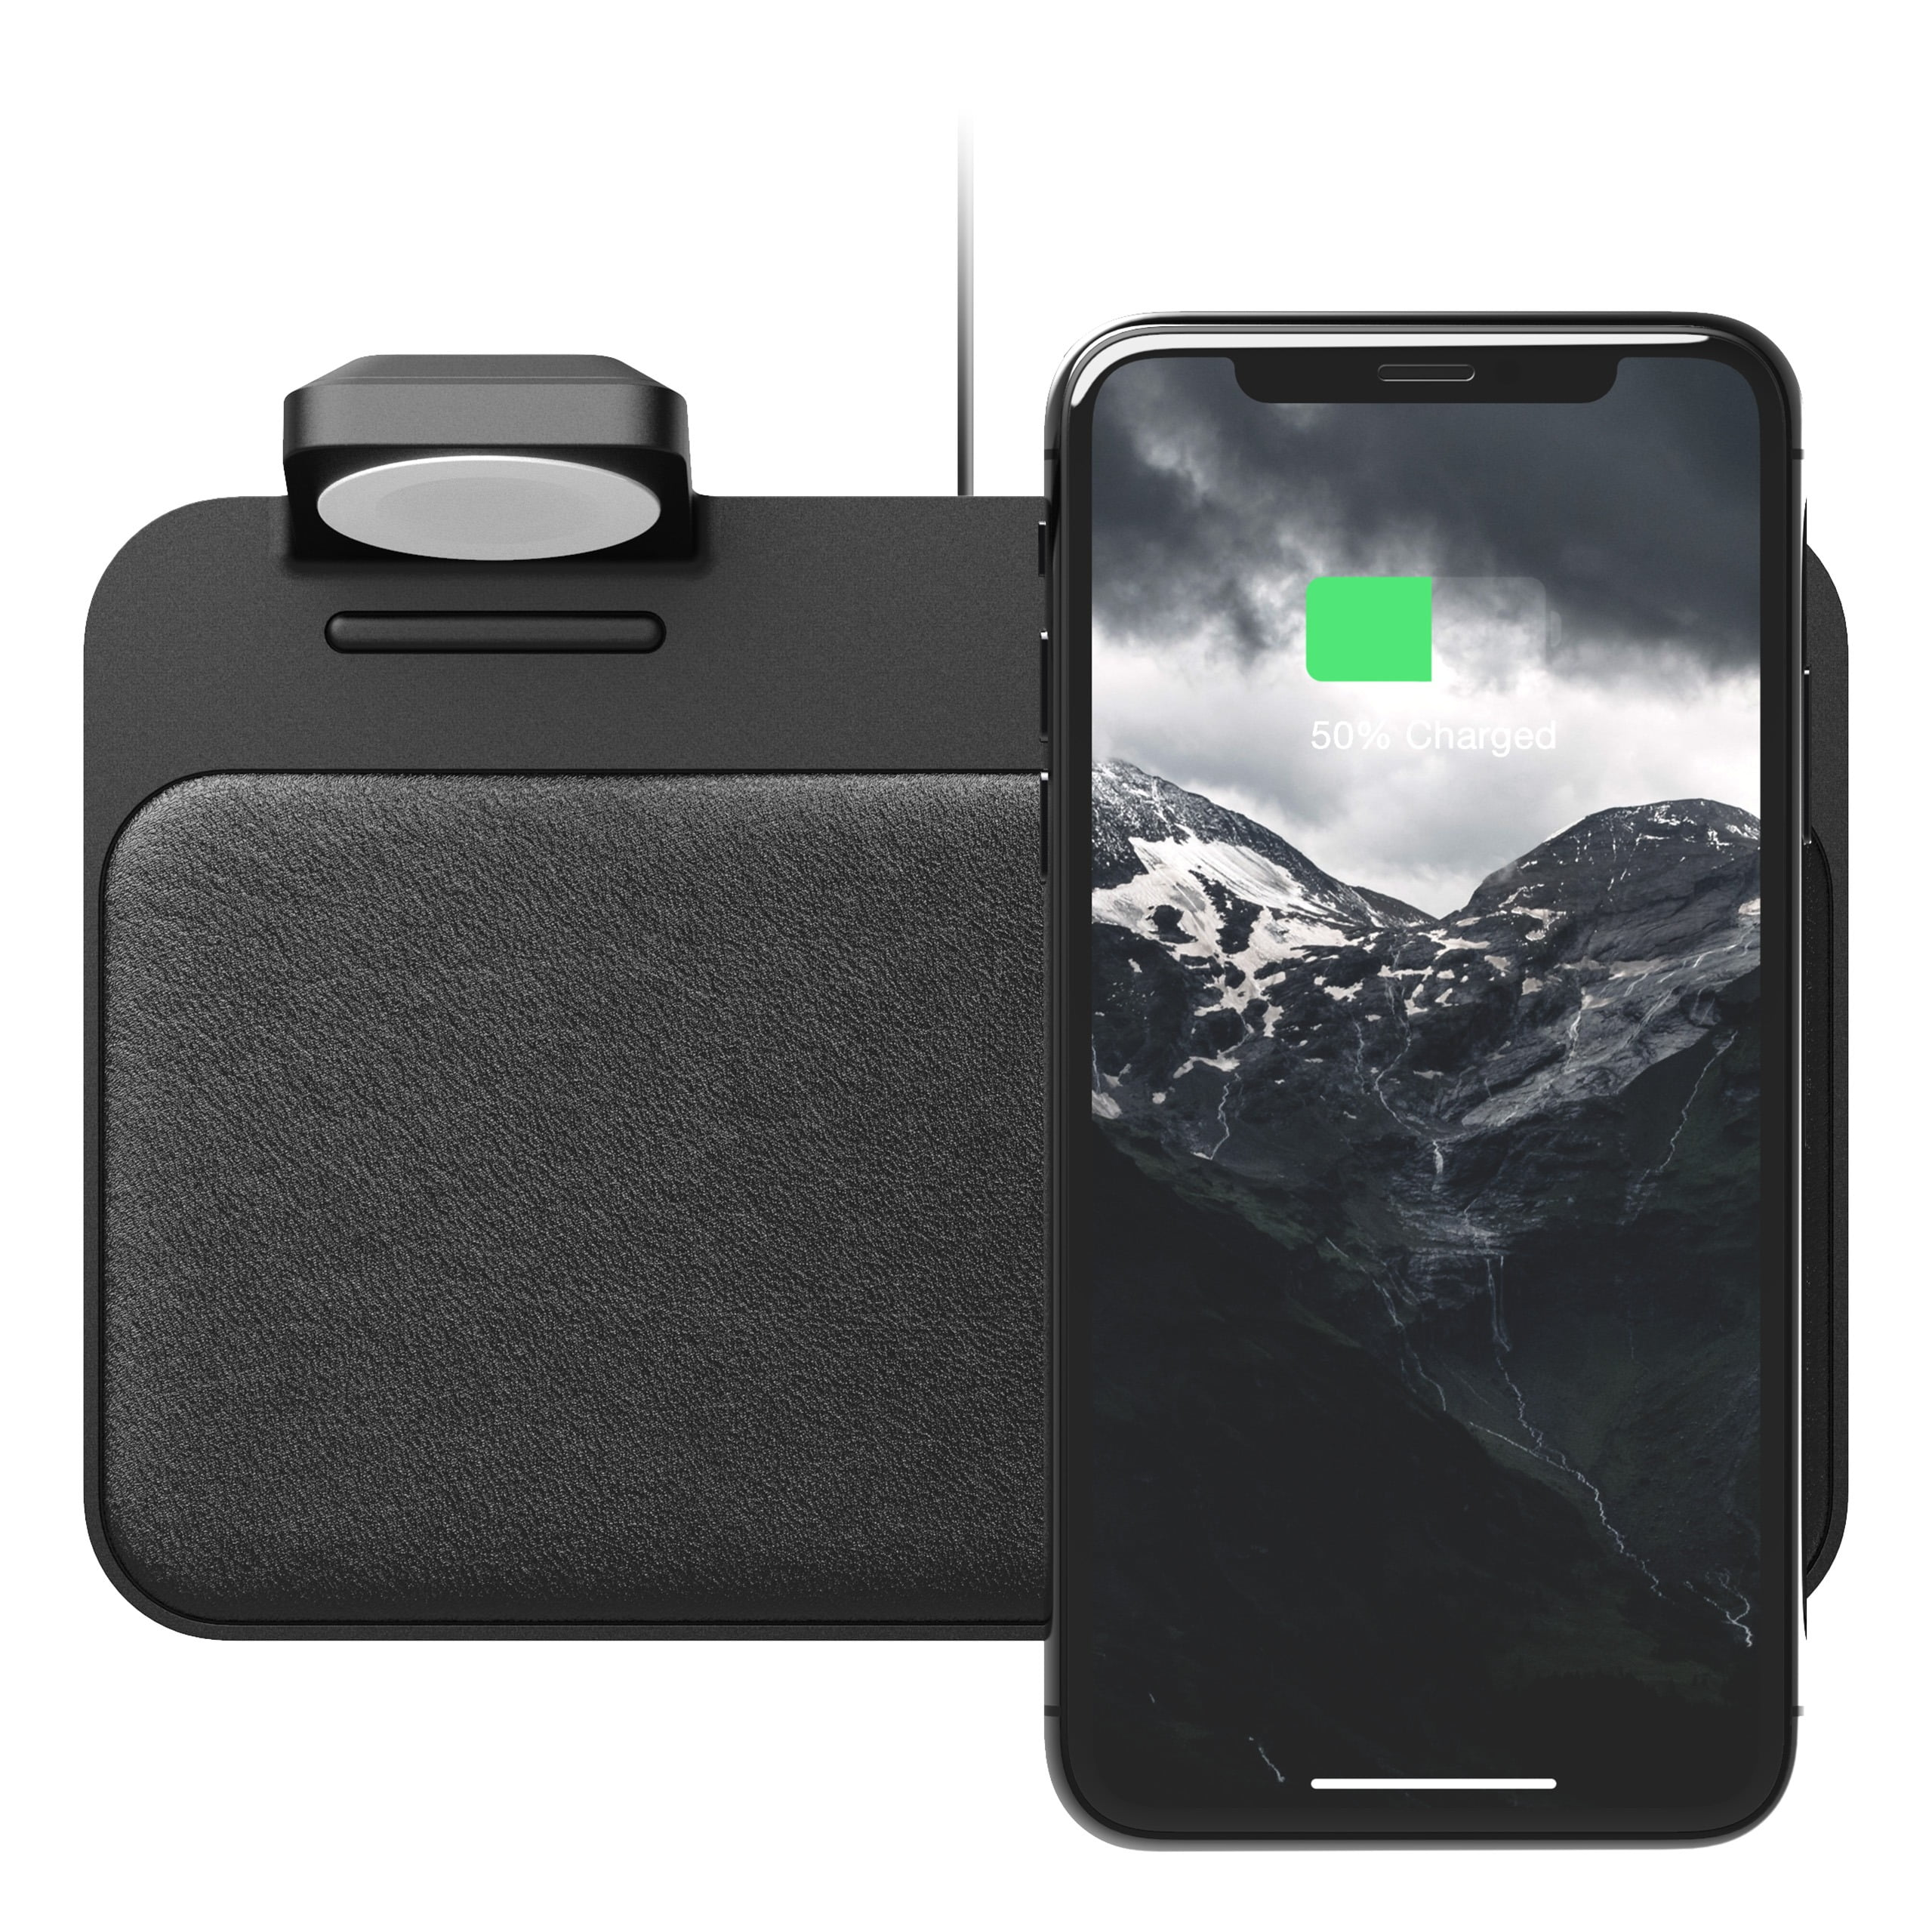 Qi Ladestation Nomad Base Station Als Alternative Zur Apple Airpower Qi